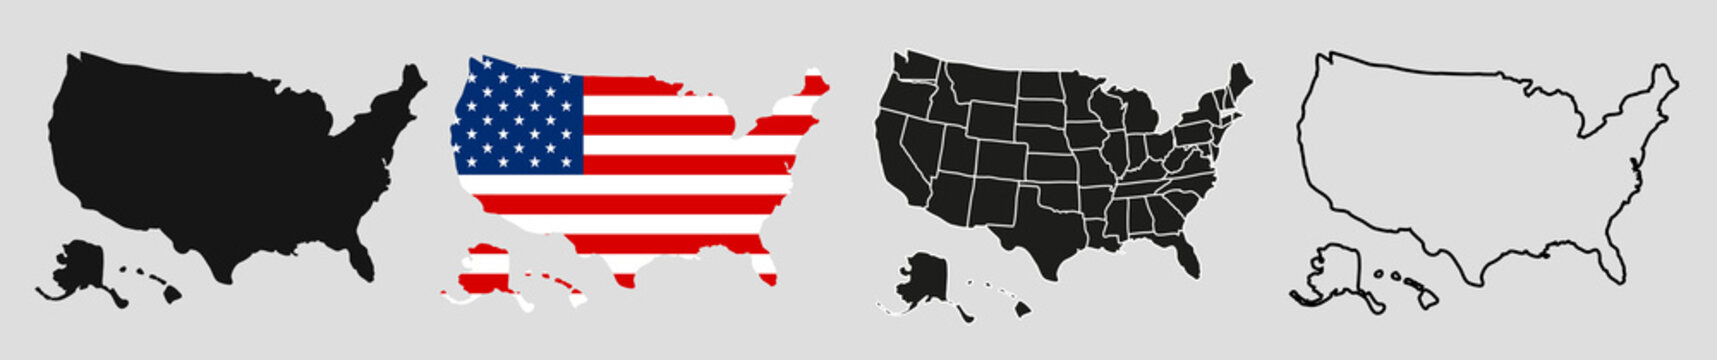 USA map with states. Vector illustration